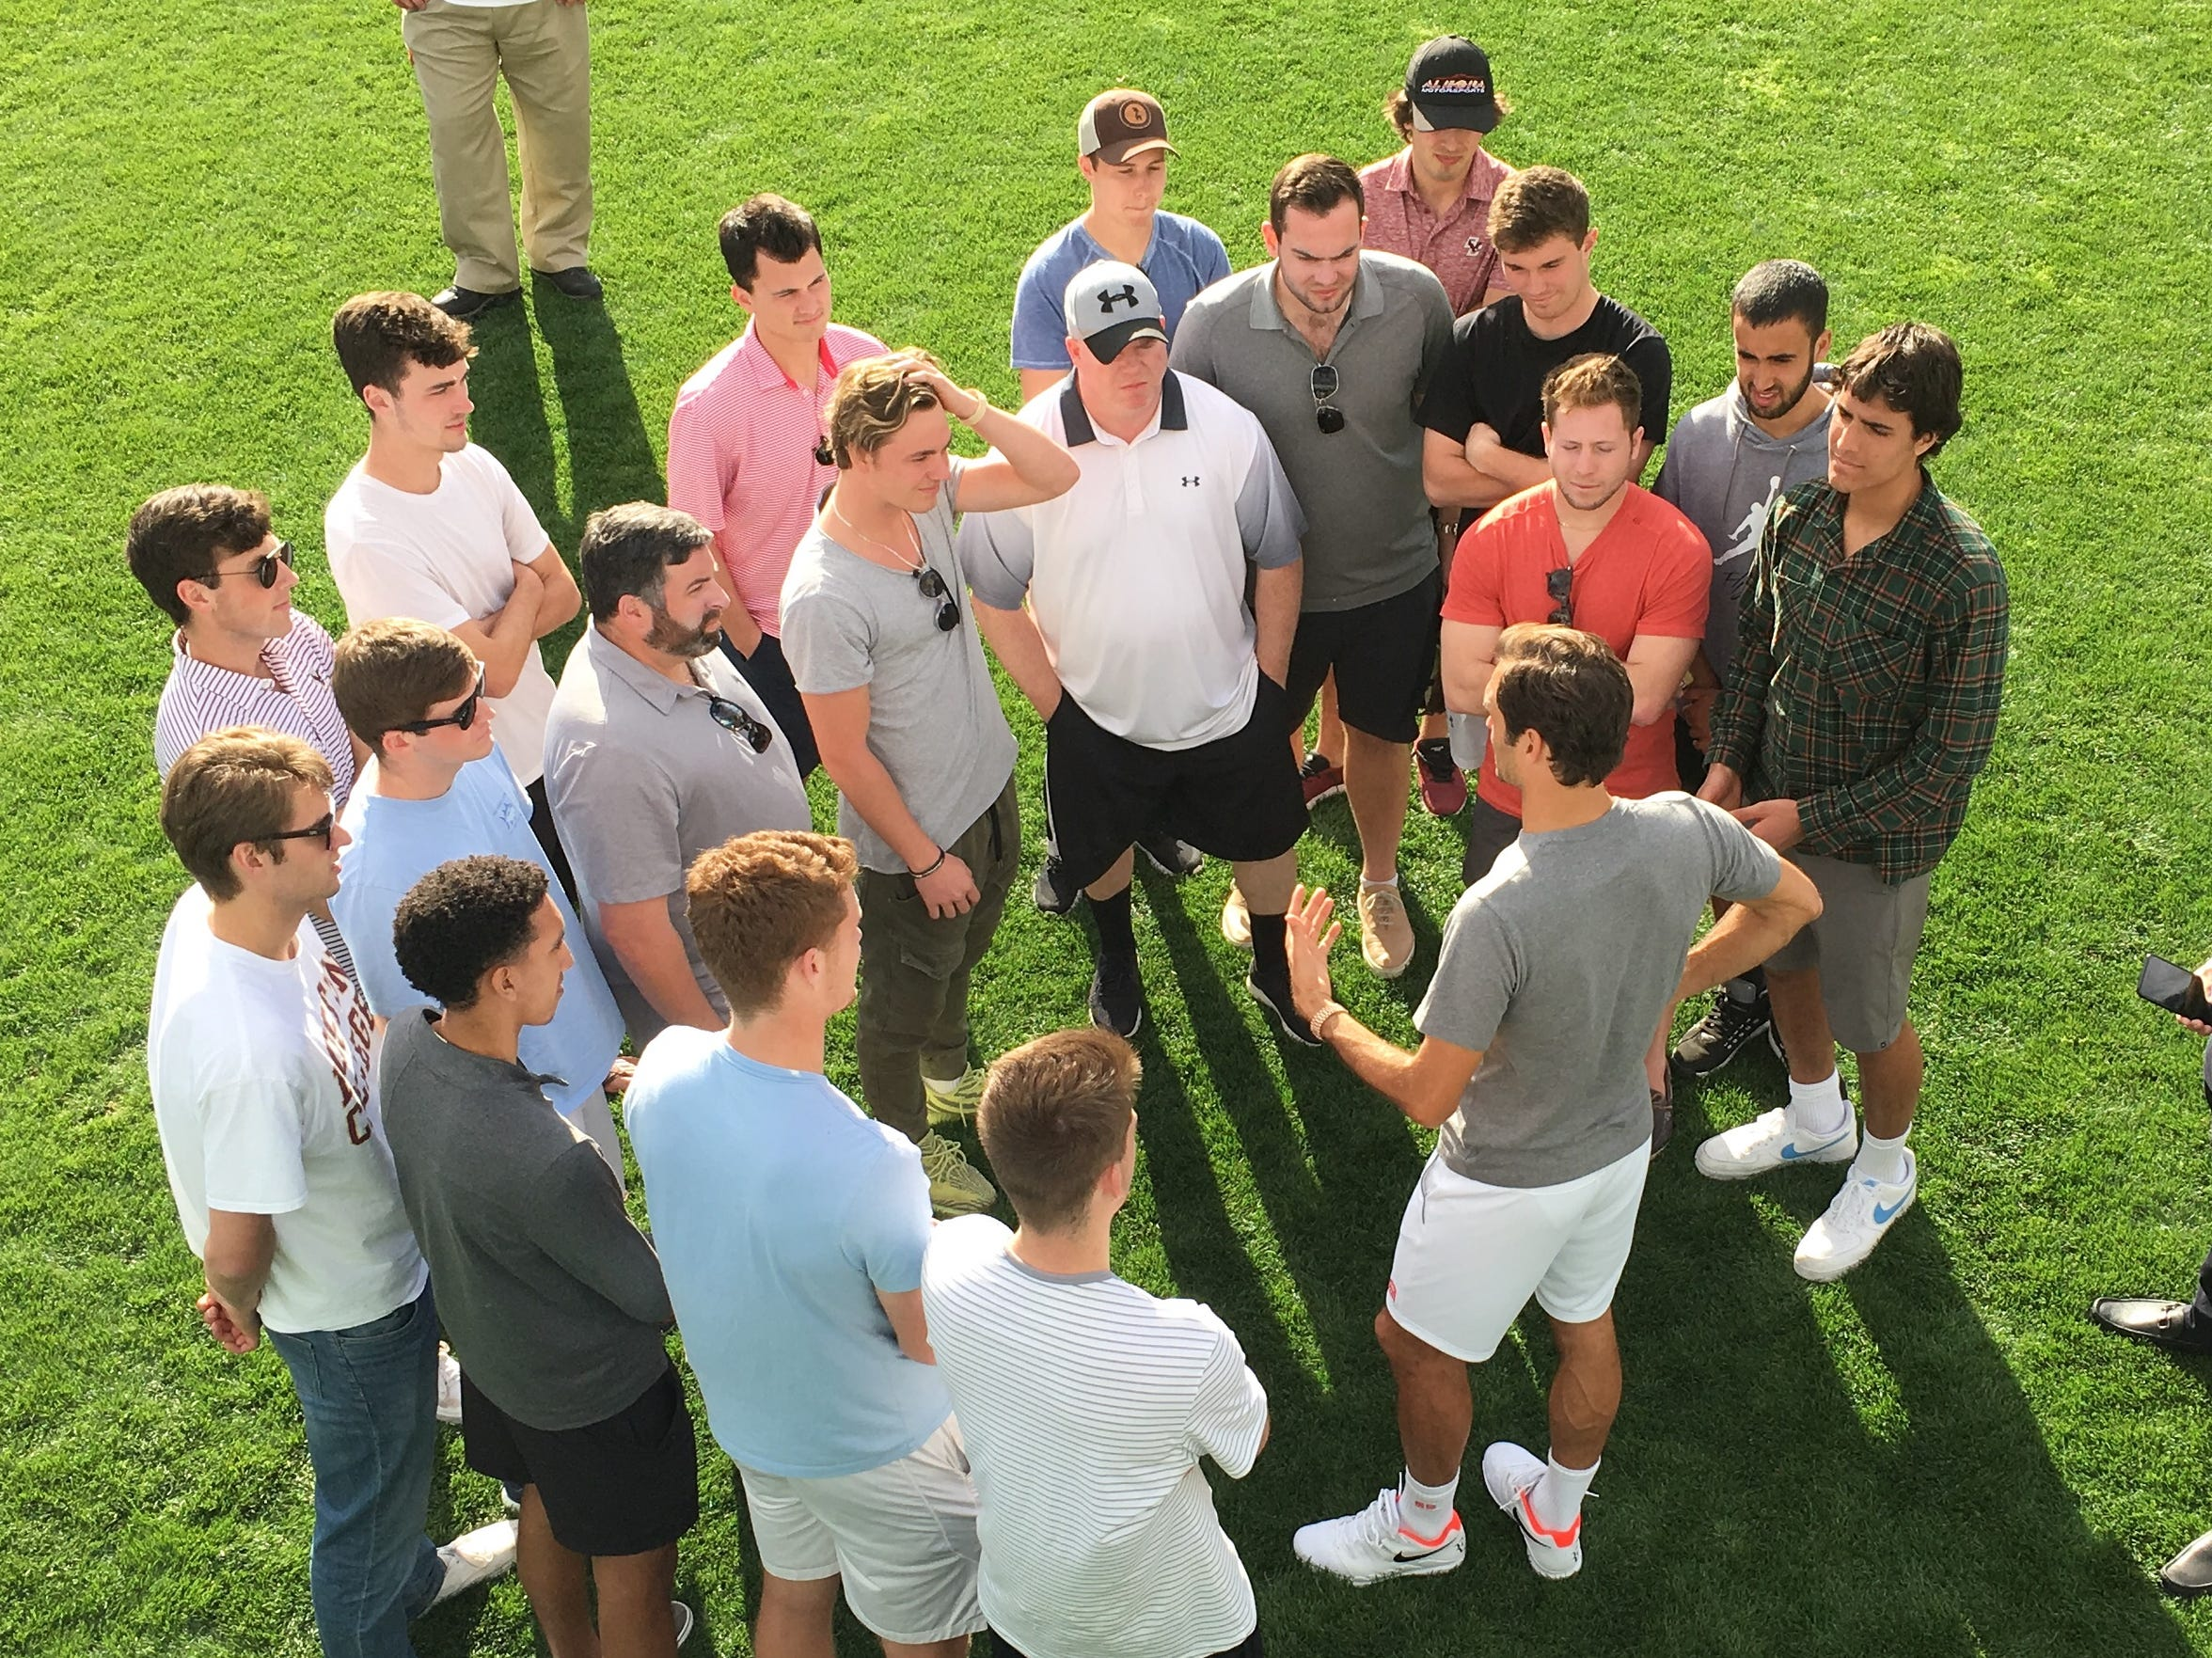 Roger Federer shares his expertise with the members of the Boston College men's tennis team Match 14 at the BNP Paribas Open.